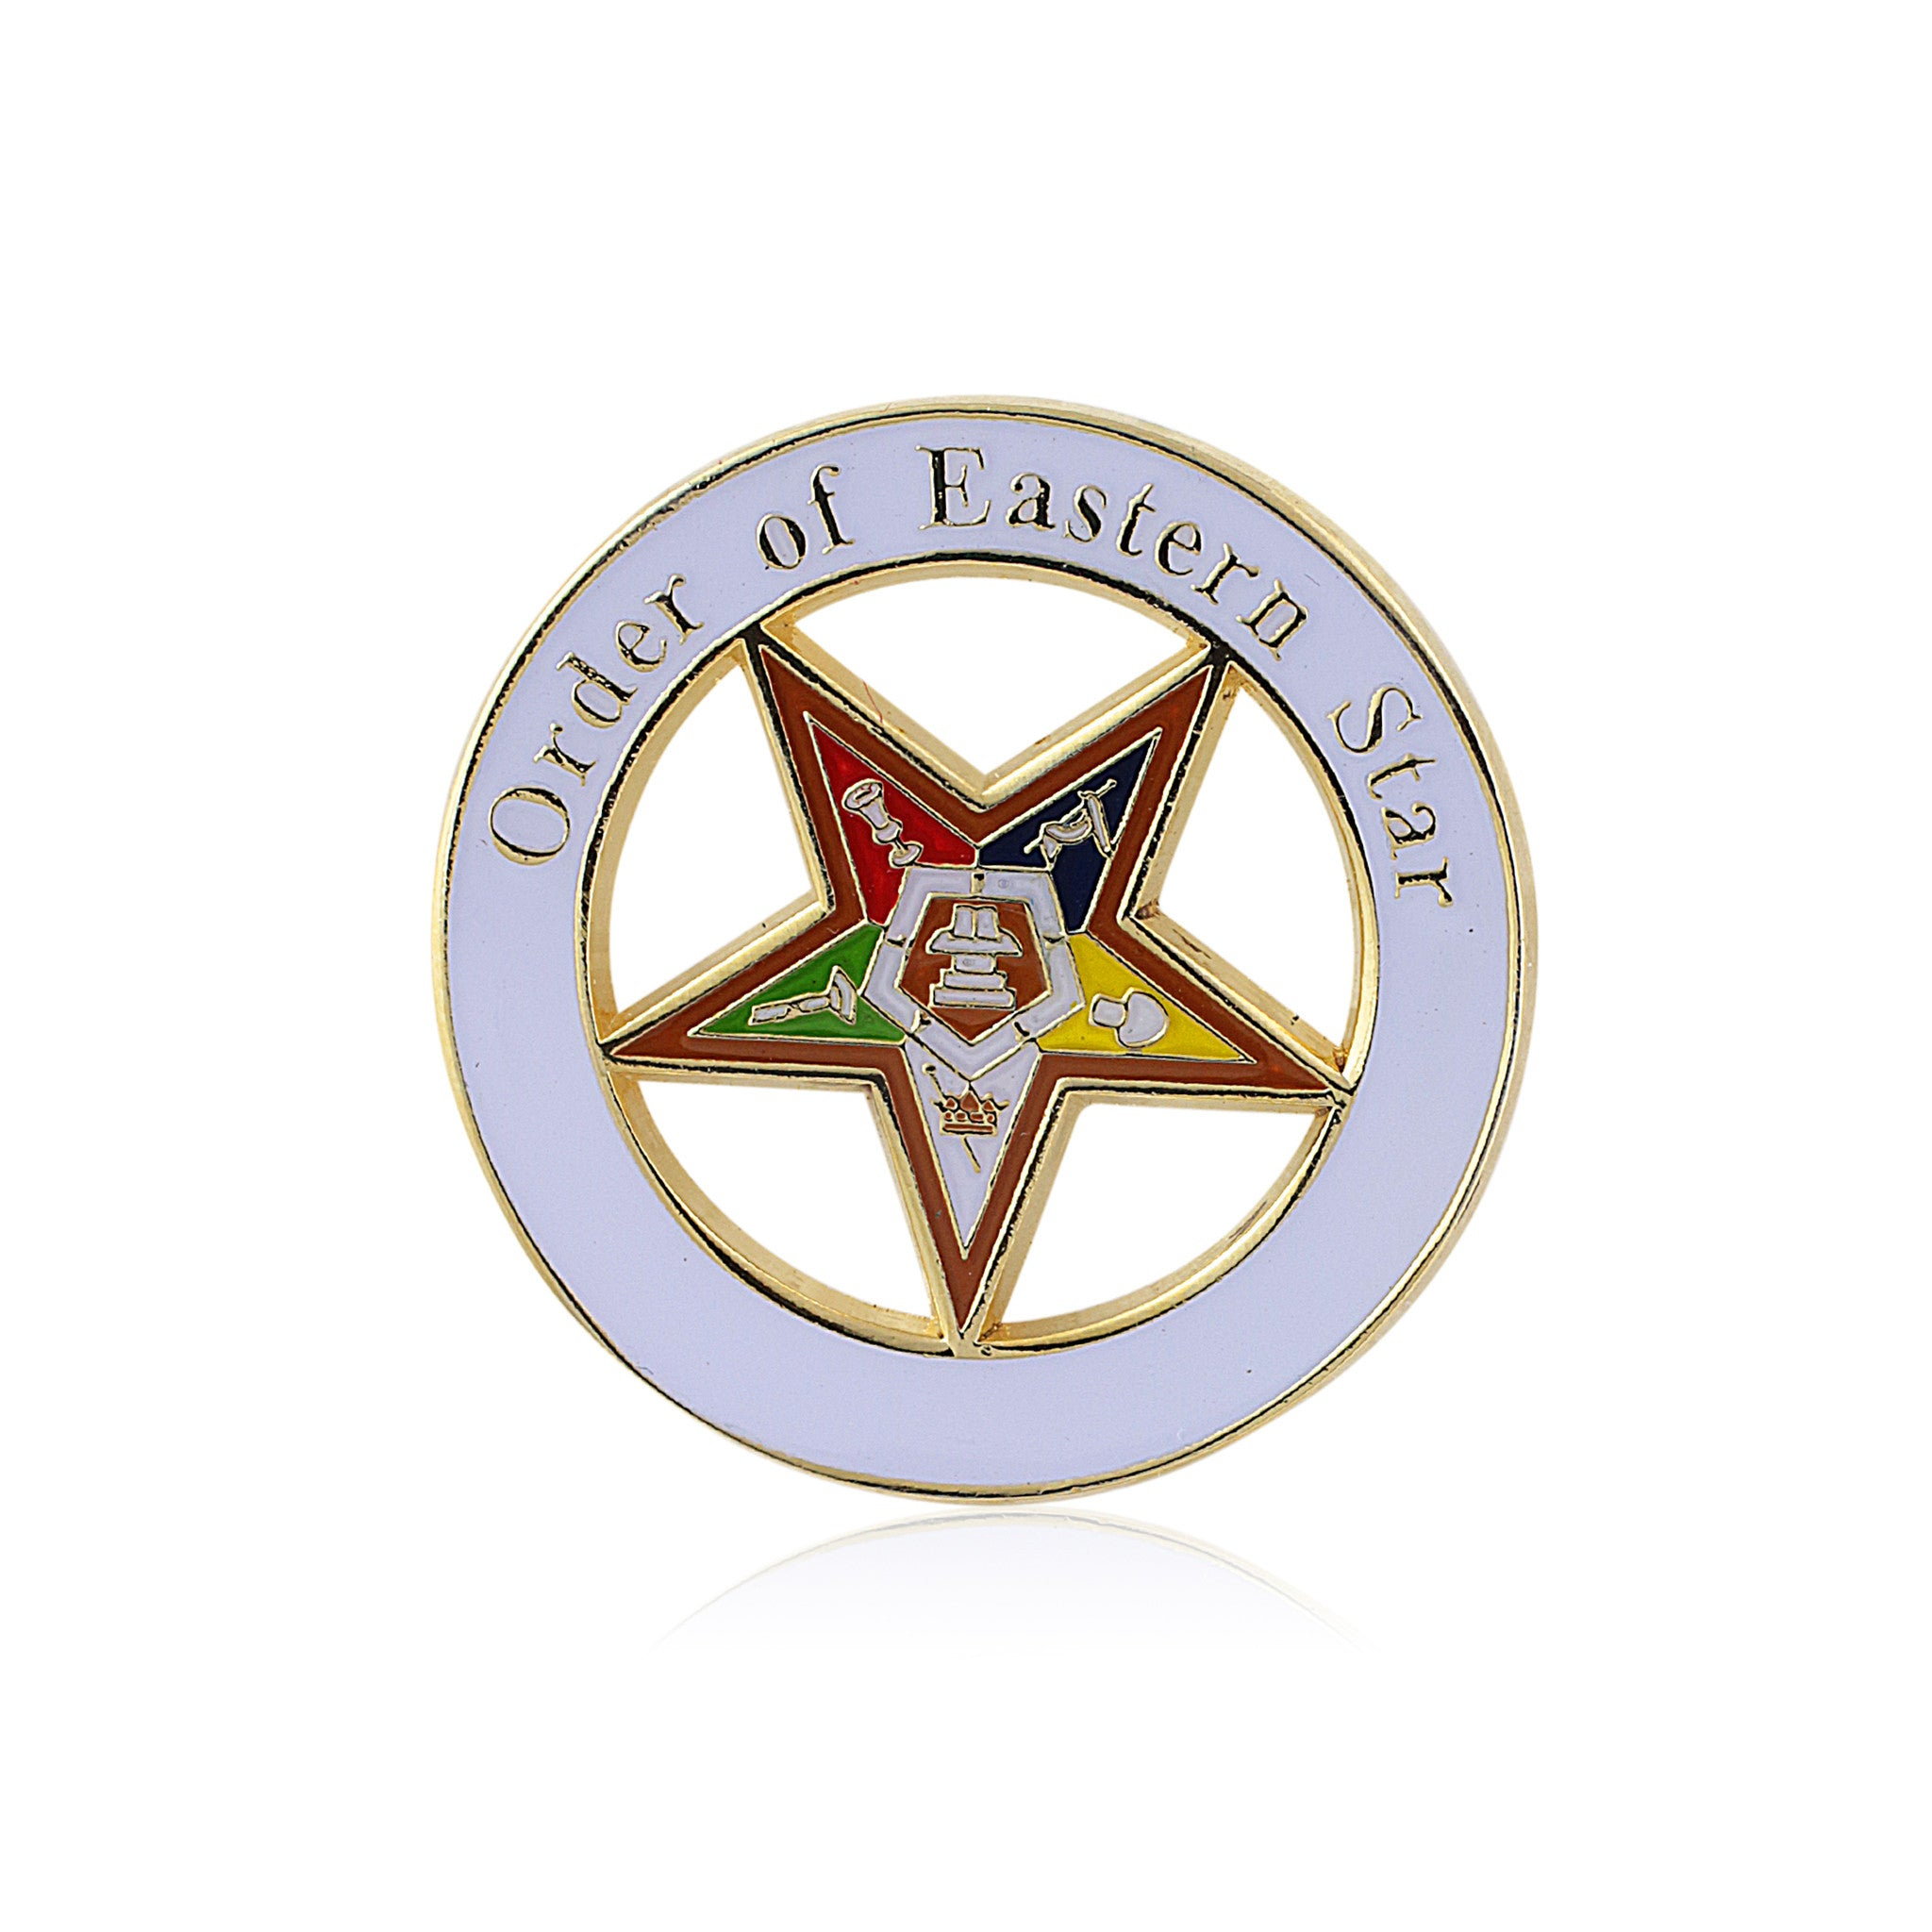 Order of the Eastern Star Masonic Lapel Pin